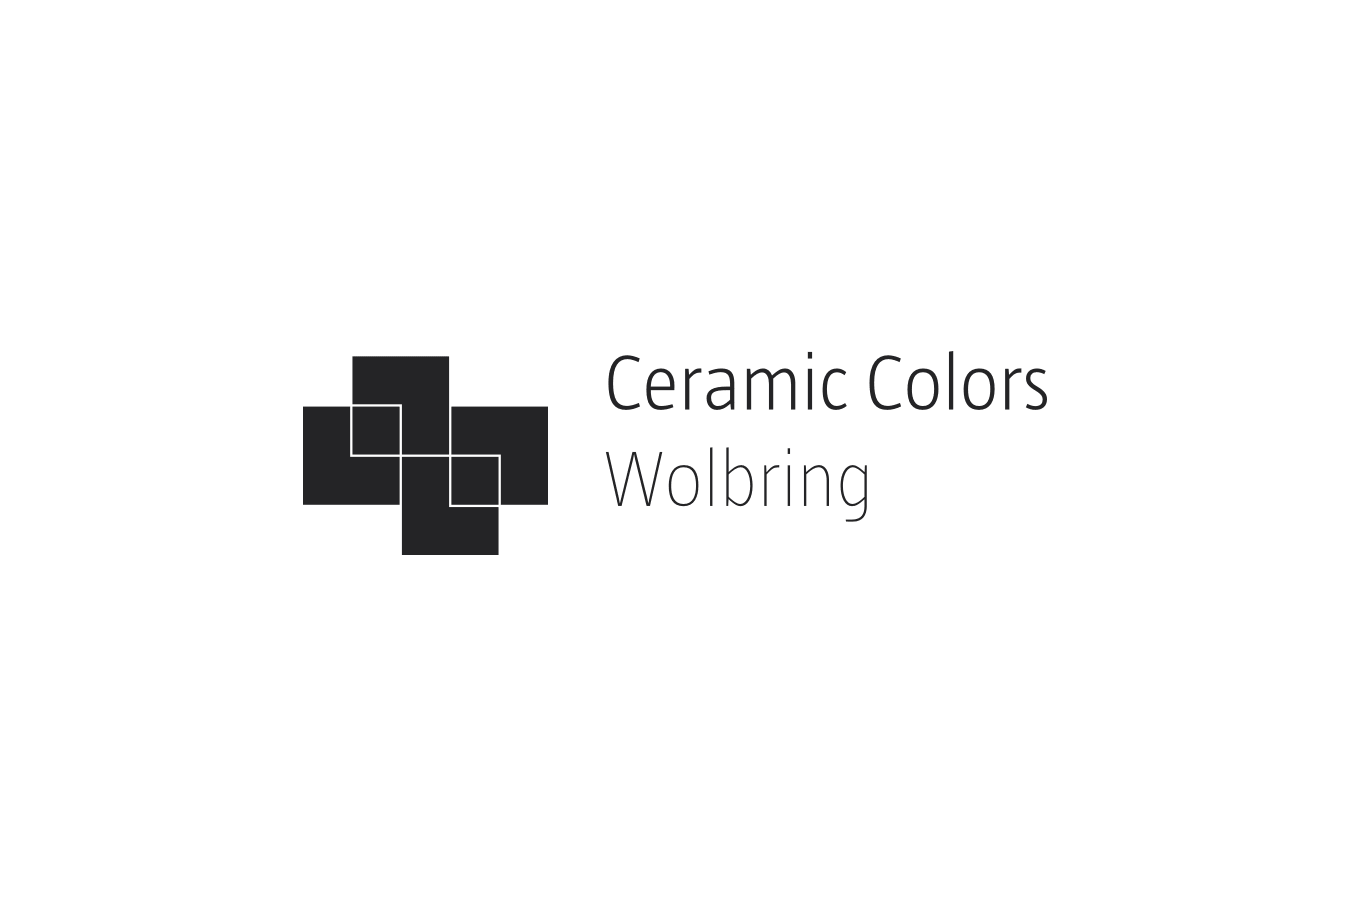 Ceramic Colors